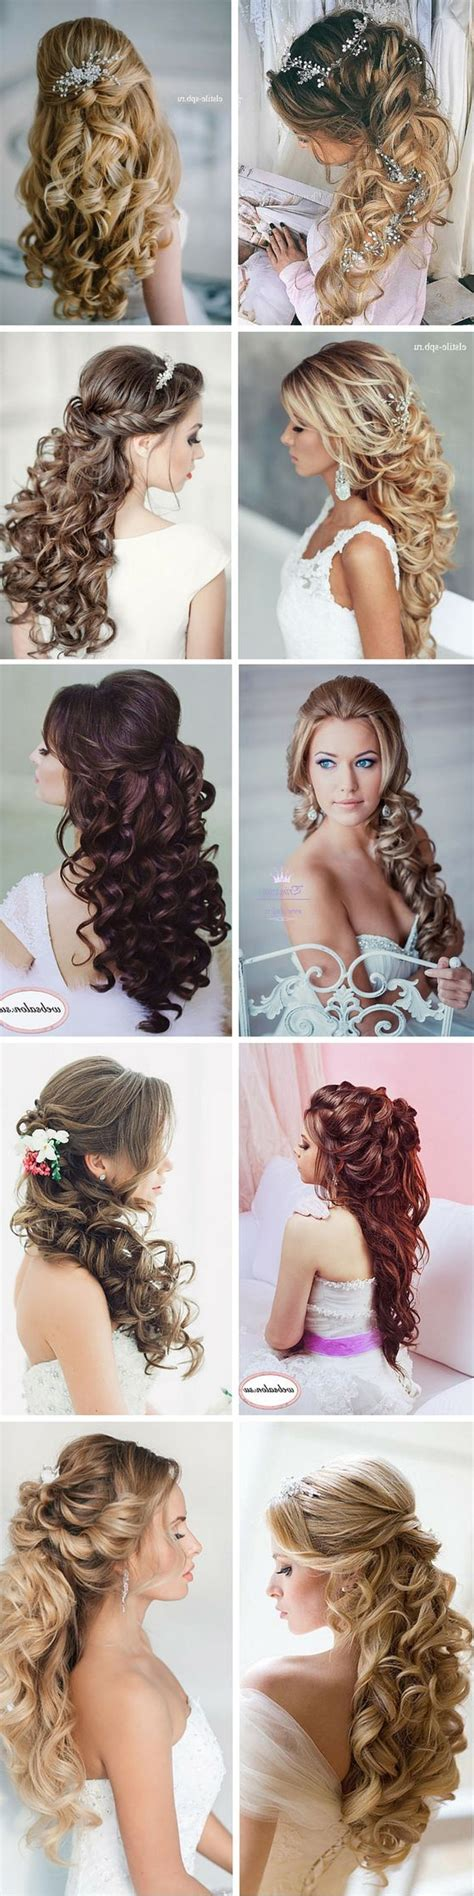 Wedding Hair Up Curls by 100 Wedding Hairstyles 2018 Curls Half